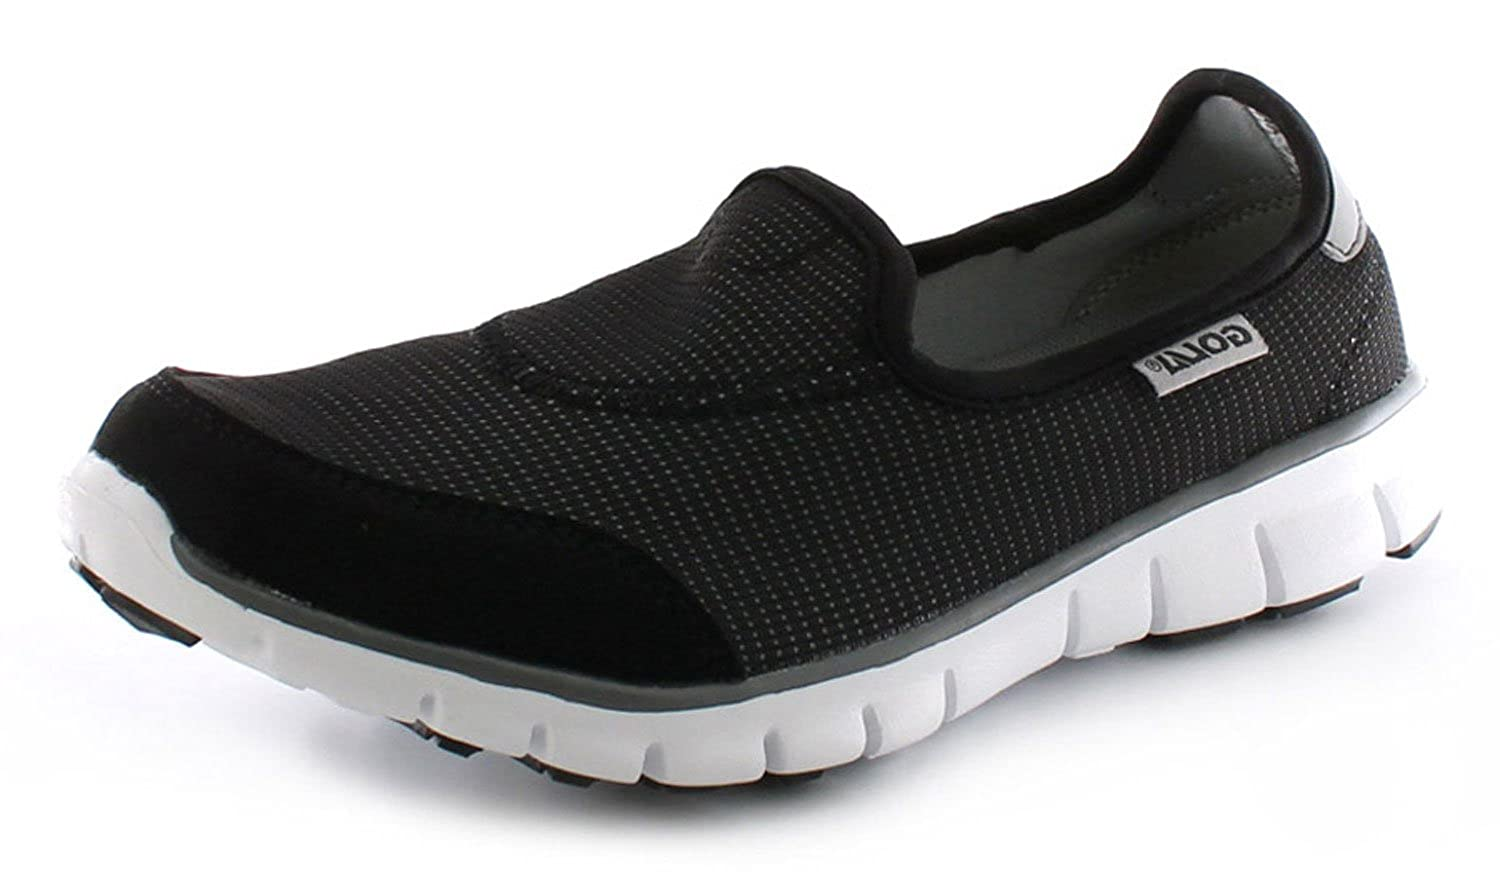 e0441685e08 New Ladies Womens Black Grey Lightweight Non Marking Sole Trainers -  Black Grey White - UK SIZE 8  Amazon.co.uk  Shoes   Bags